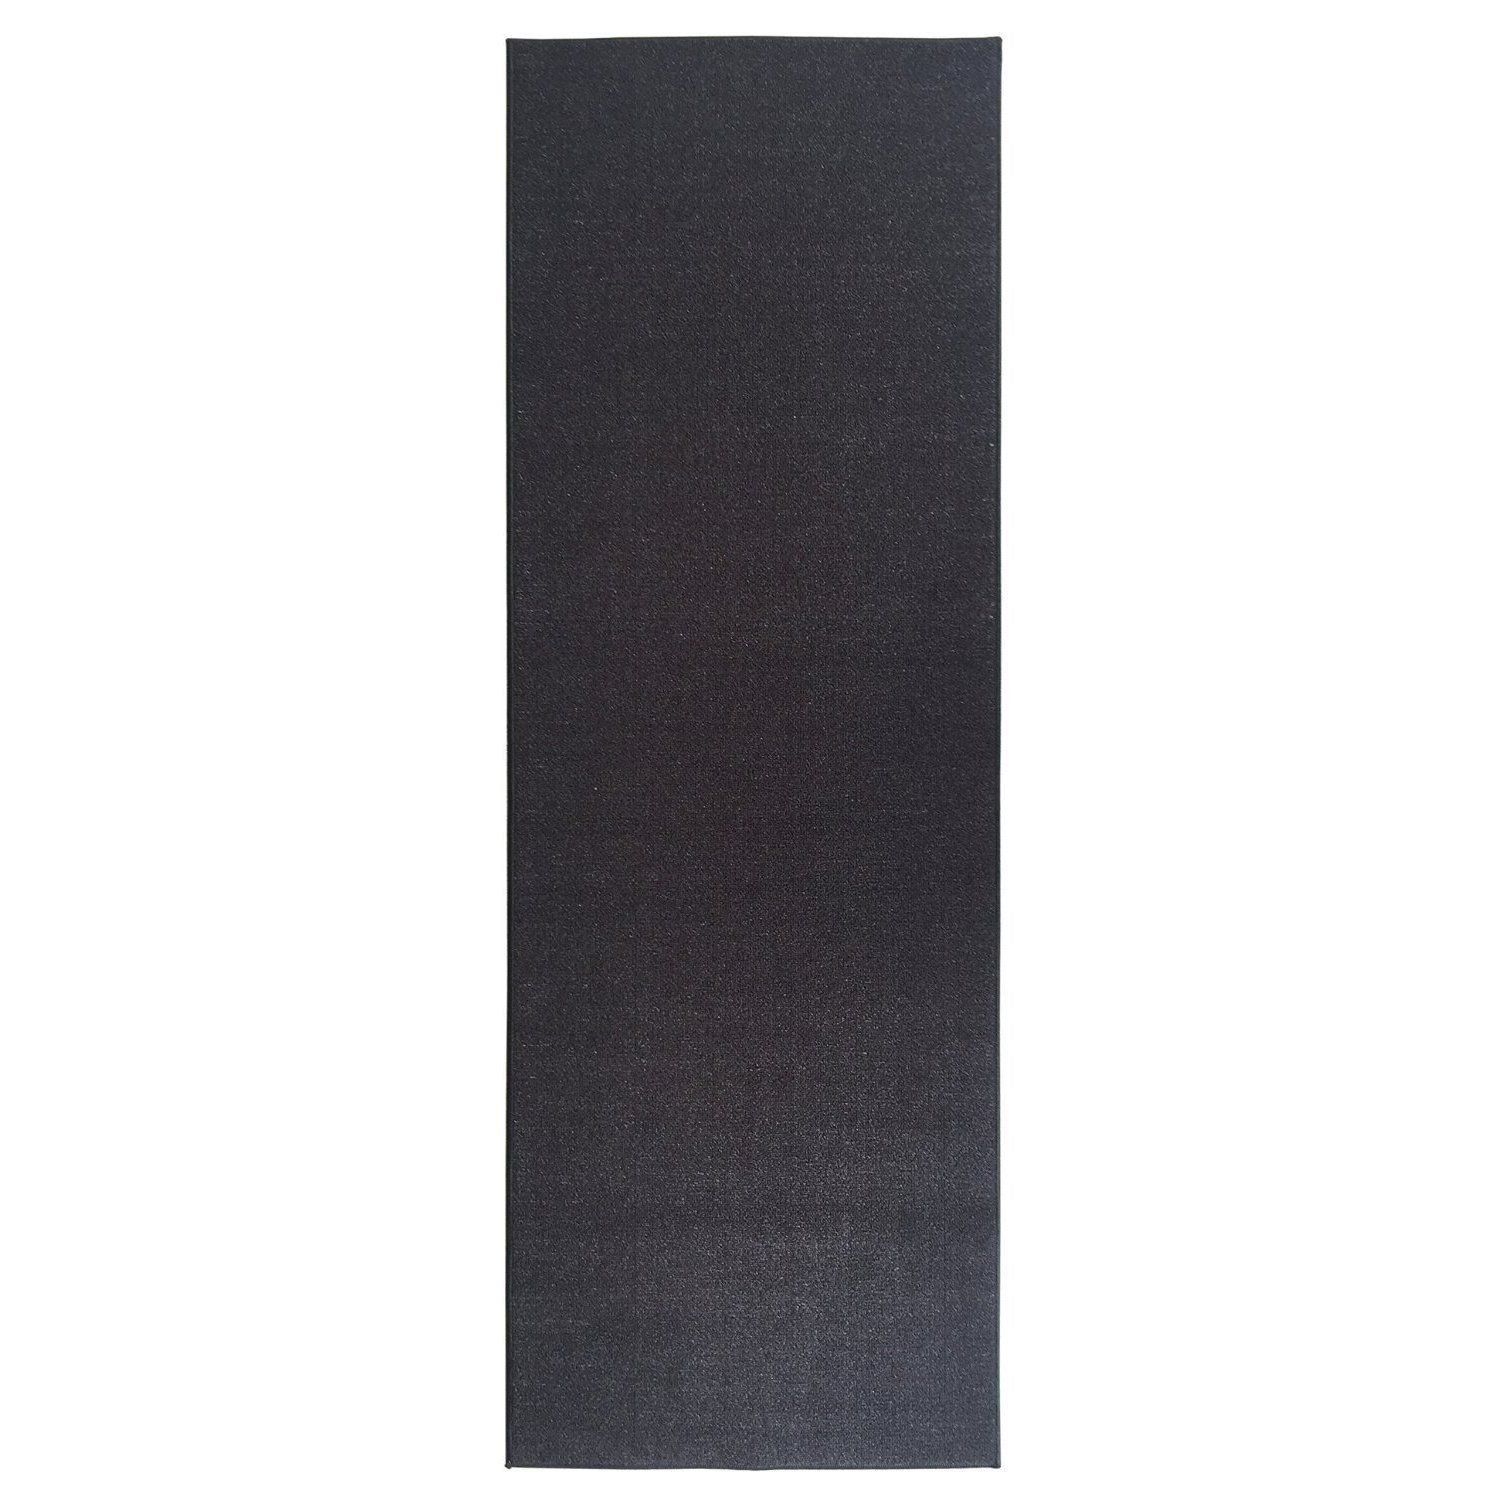 Ottomanson ottohome collection carpet black solid runner rug with